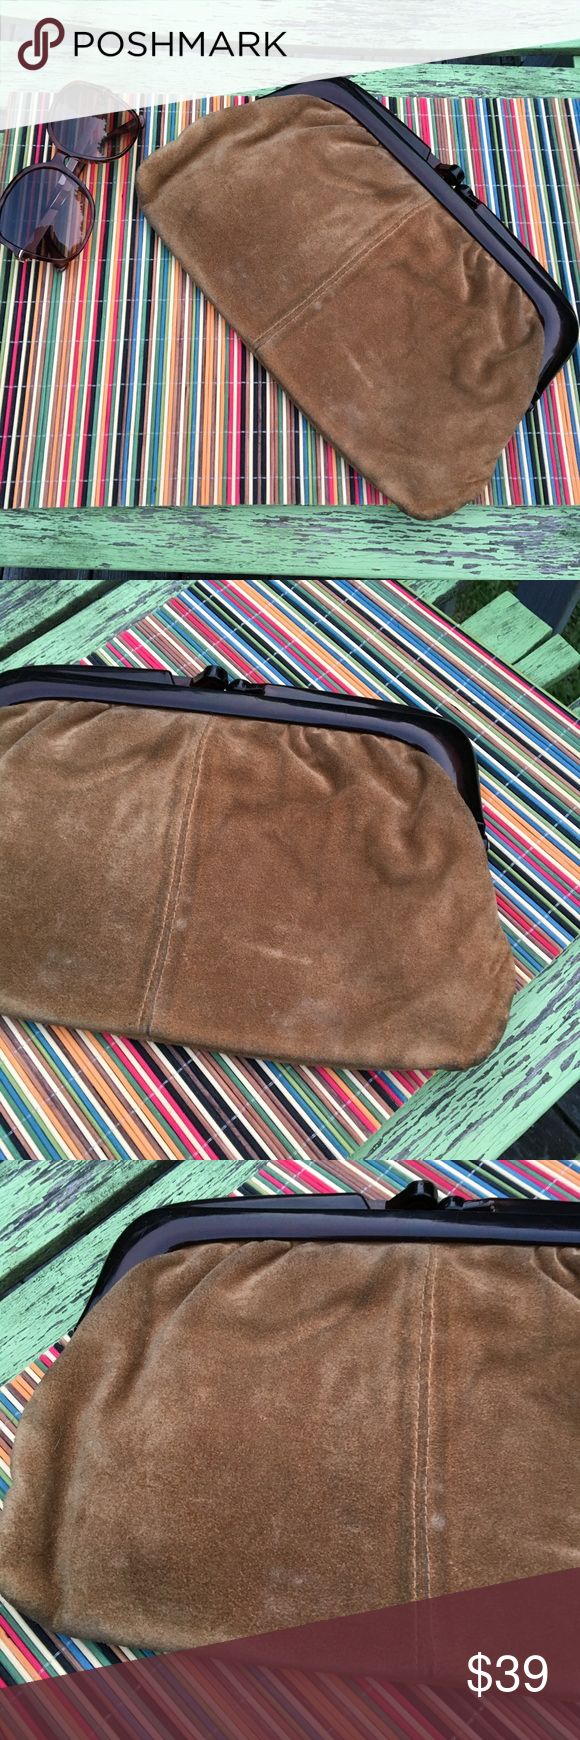 Vintage Italian suede clutch Vintage and gently worn. See pics for minor stains. Can easily be cleaned with suede shoe cleaner. Snap closure. Make an offer. 30% off bundles of two or more Bags Clutches & Wristlets